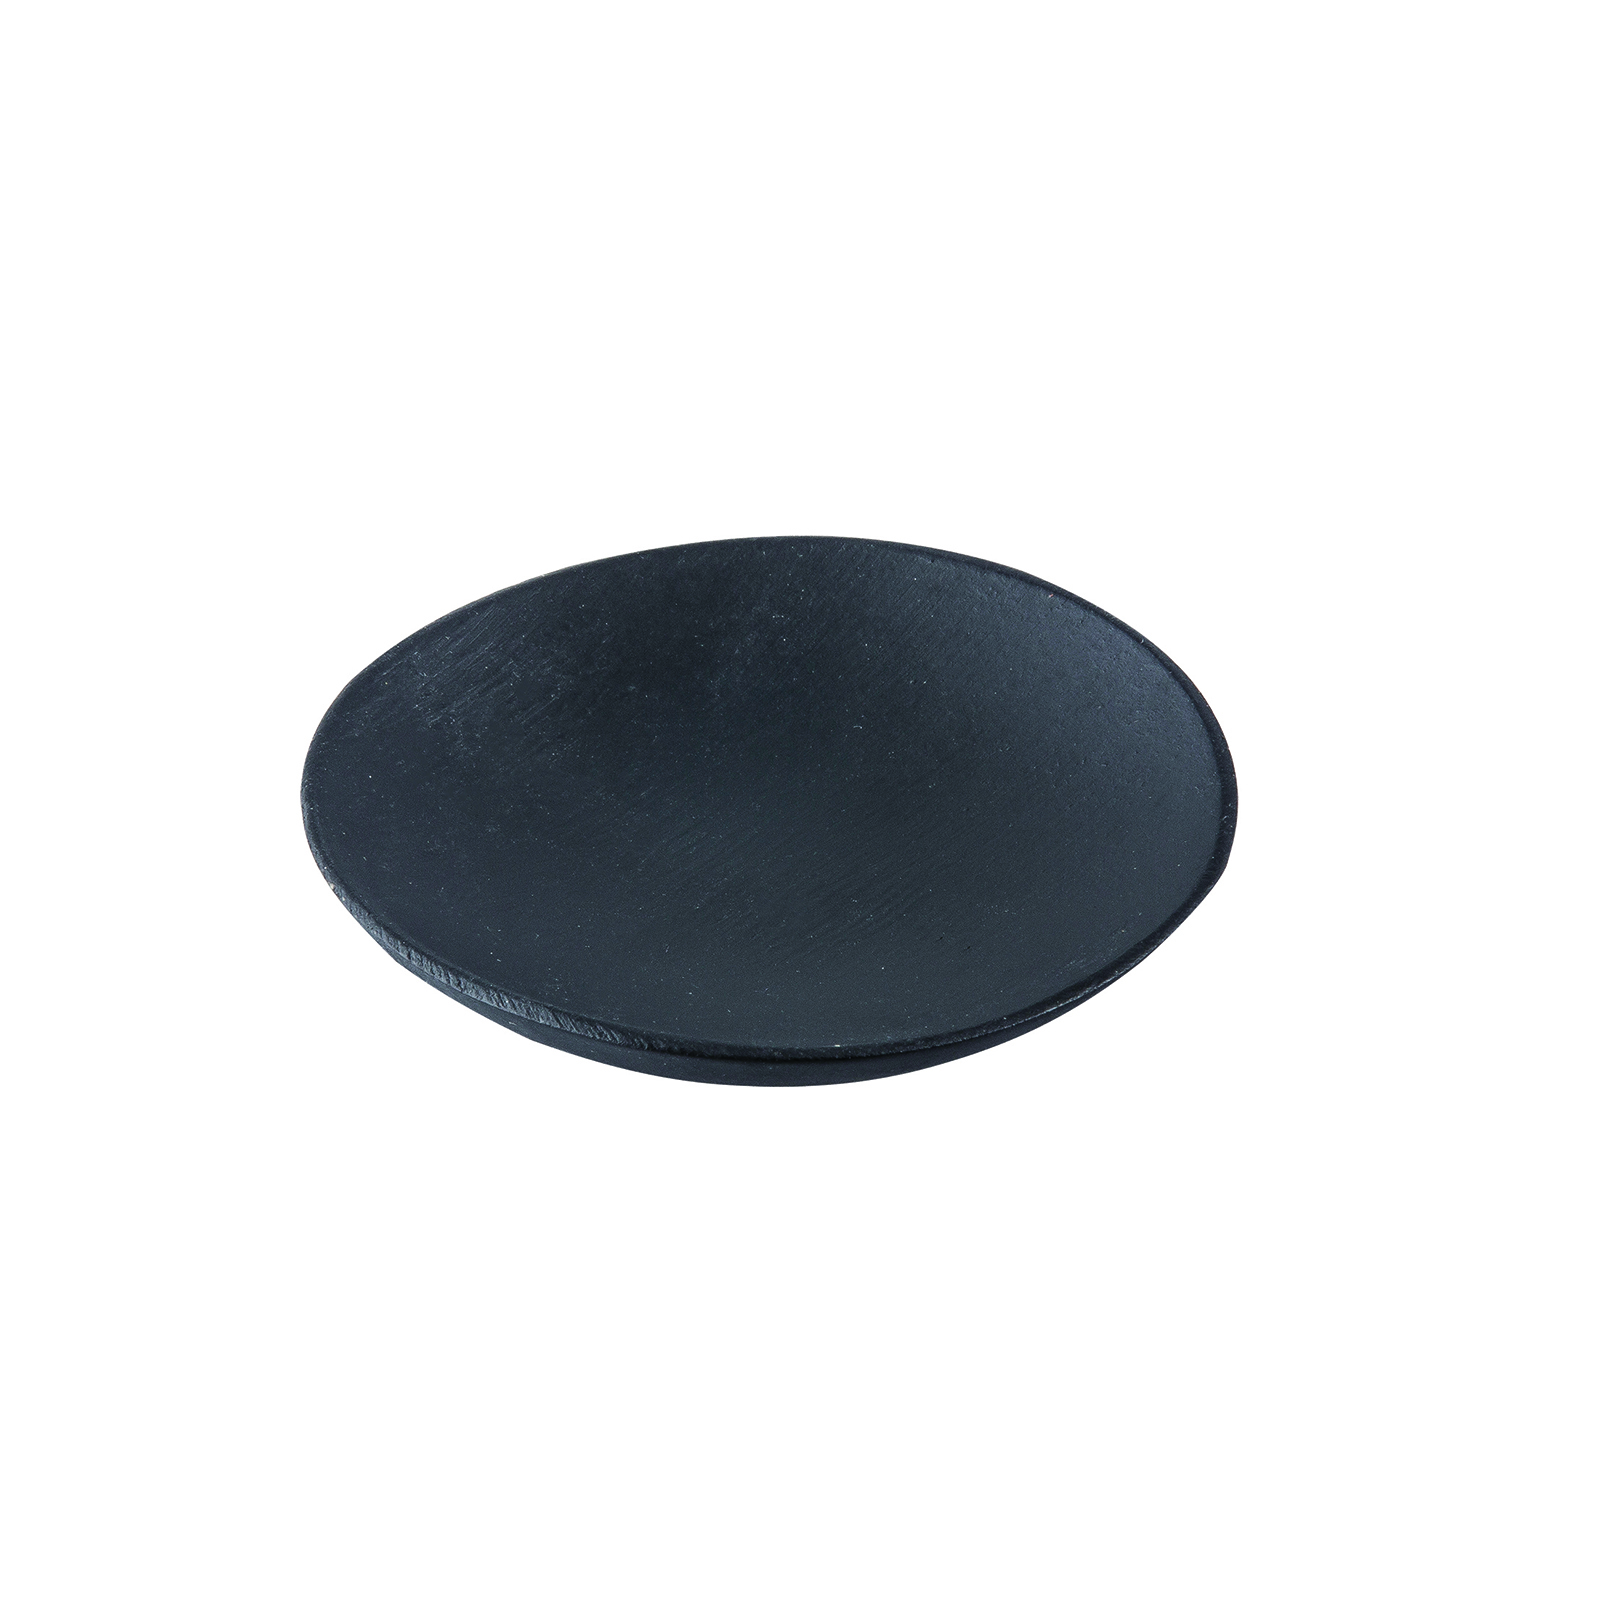 TableCraft Products BAMDRBK2 disposable plates